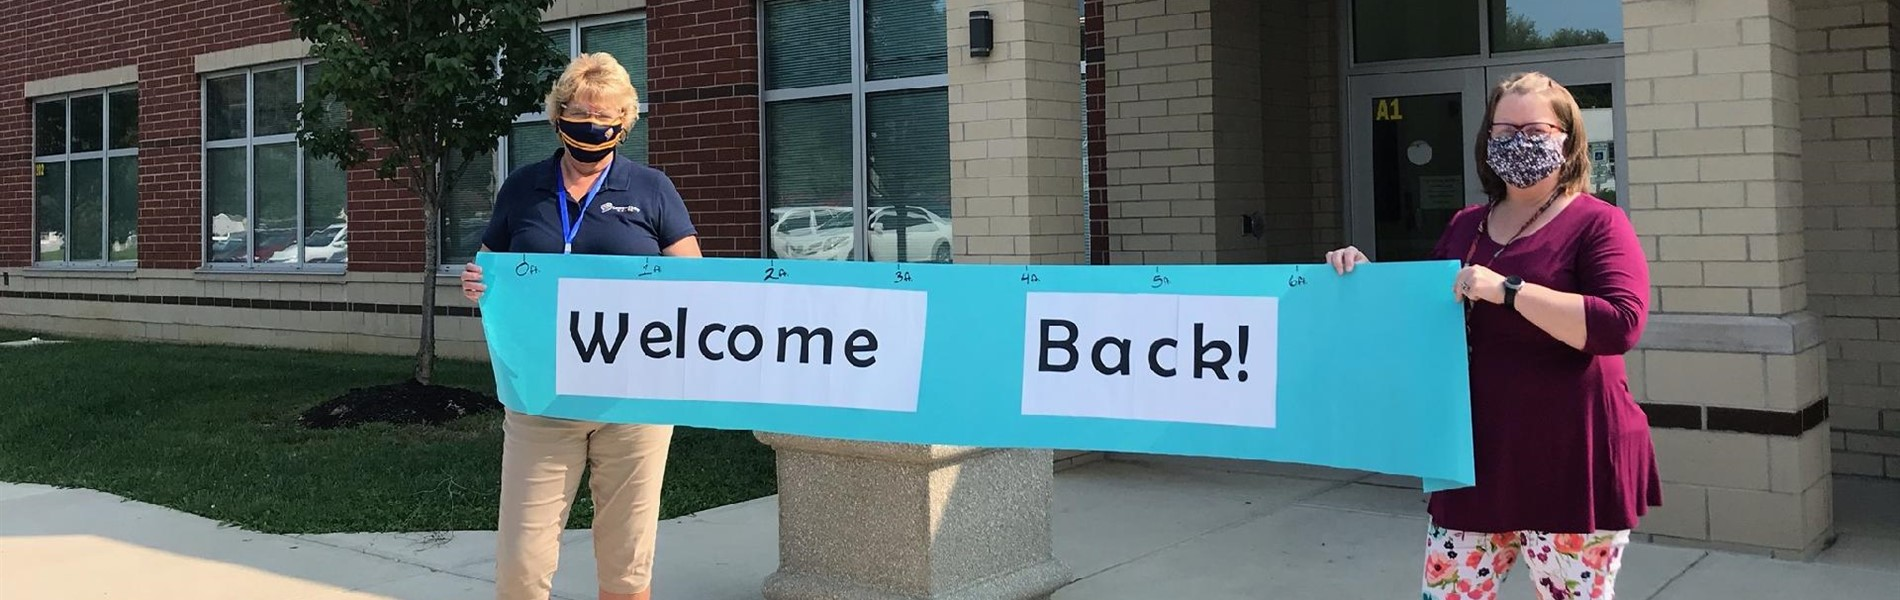 Sandy Walker, Principal, and Amy Morris, Assistant Principal, welcome students back in September, 2020.